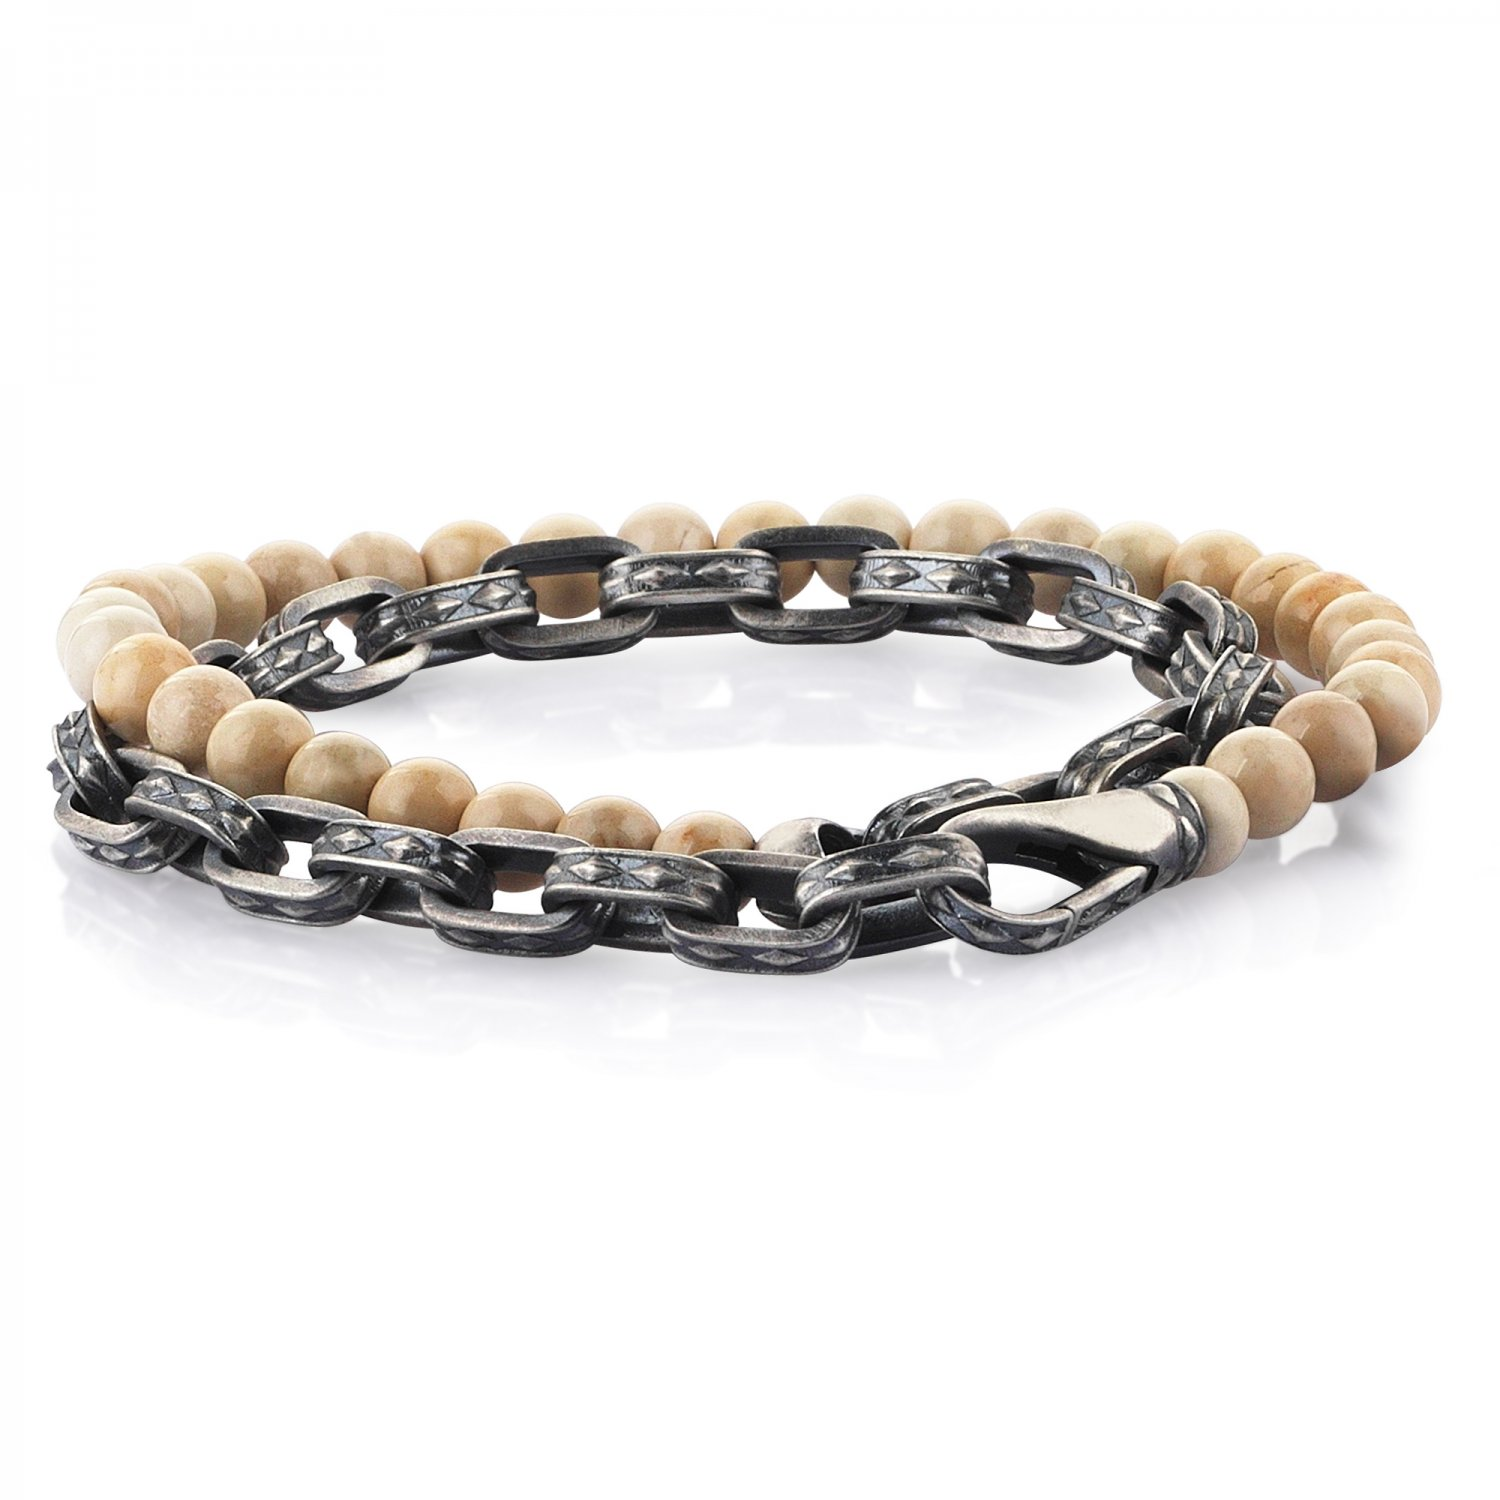 Oxidised Silver Cubic Chain Bracelet with River Stone Beads, 6.00mm